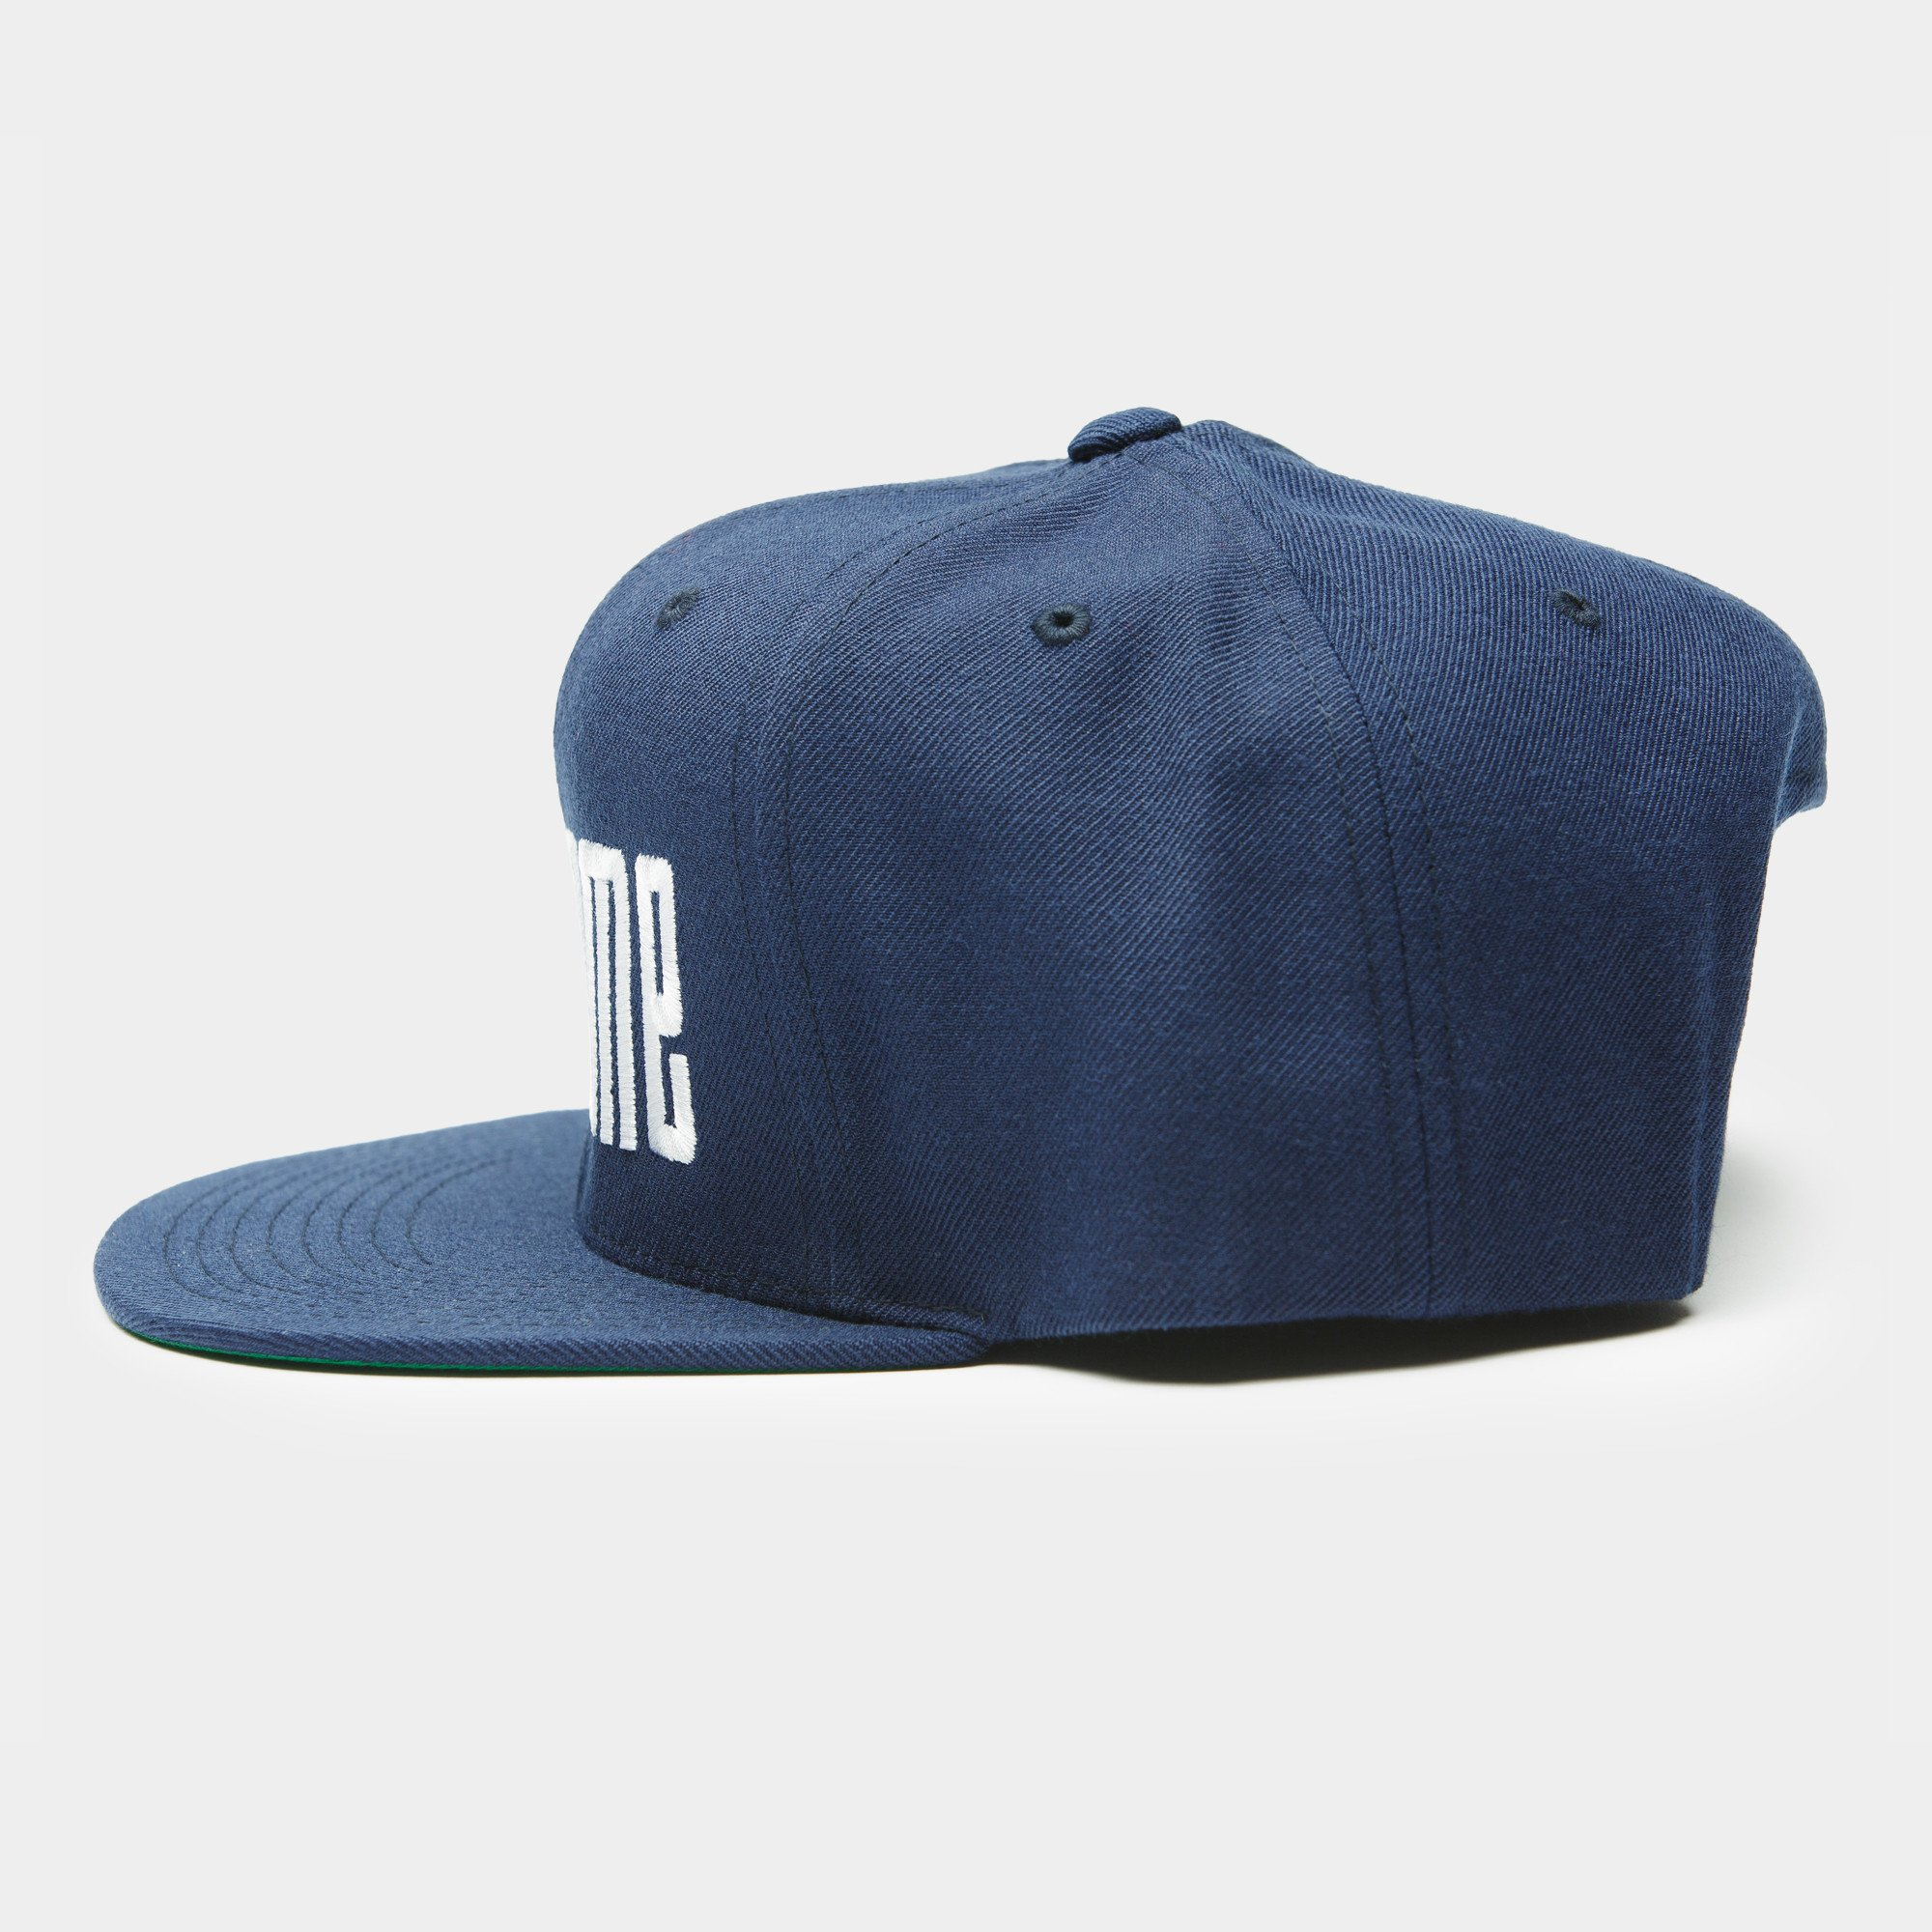 Logo Embroidery Snapback Cap - White / Blue